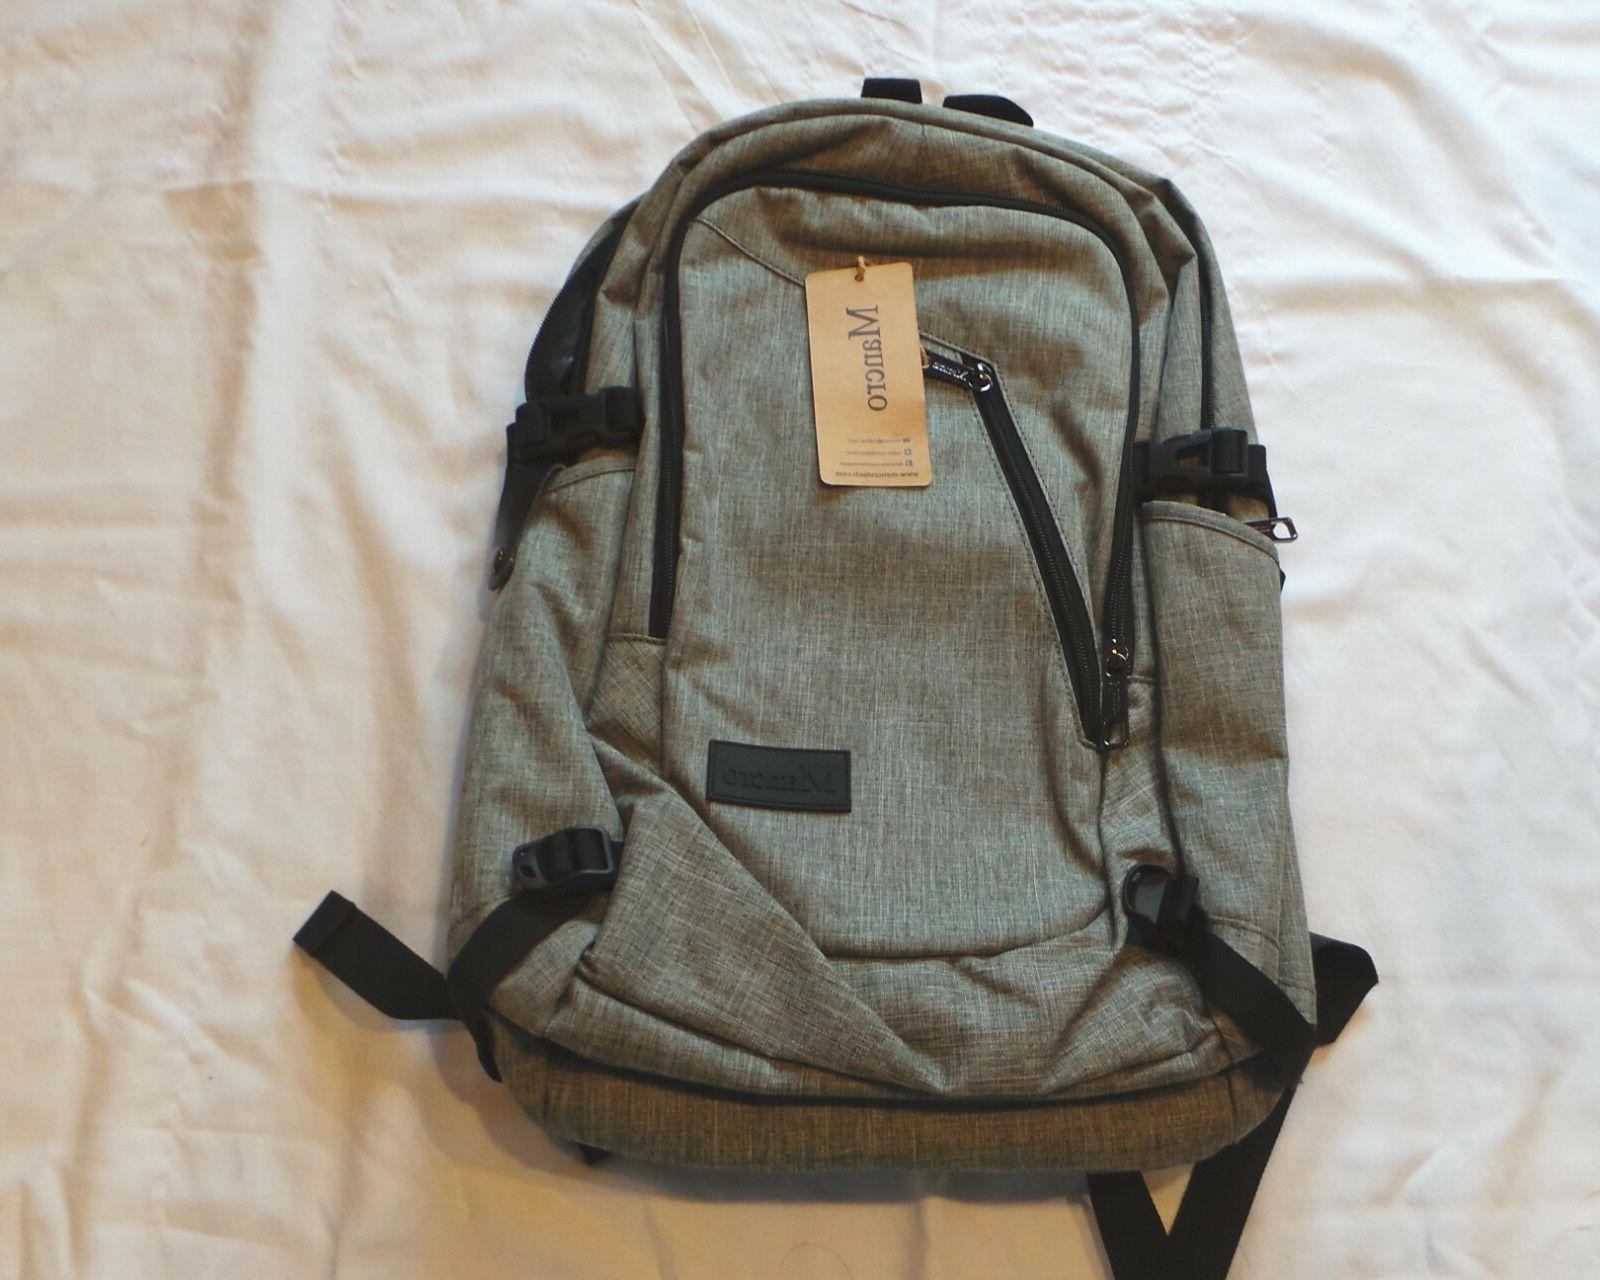 MANCRO LAPTOP BACKPACK-WATER RESISTANT-USB CHARGING CABLE-MU